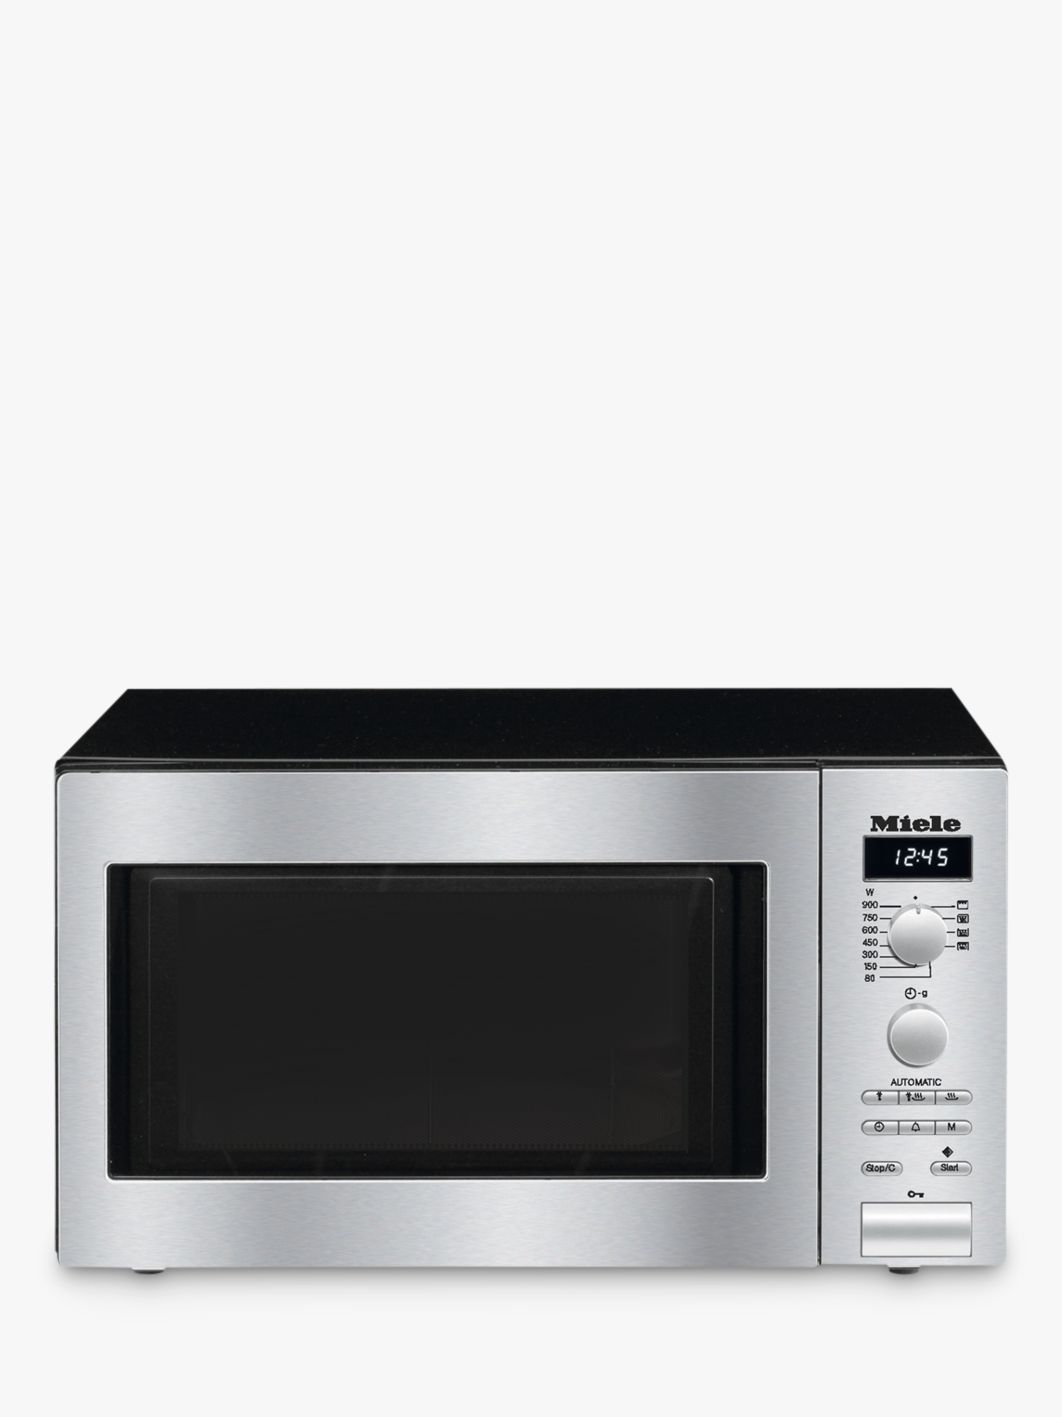 Combimagnetron Miele Miele M6012 Contourline Microwave Oven With Grill Stainless Steel